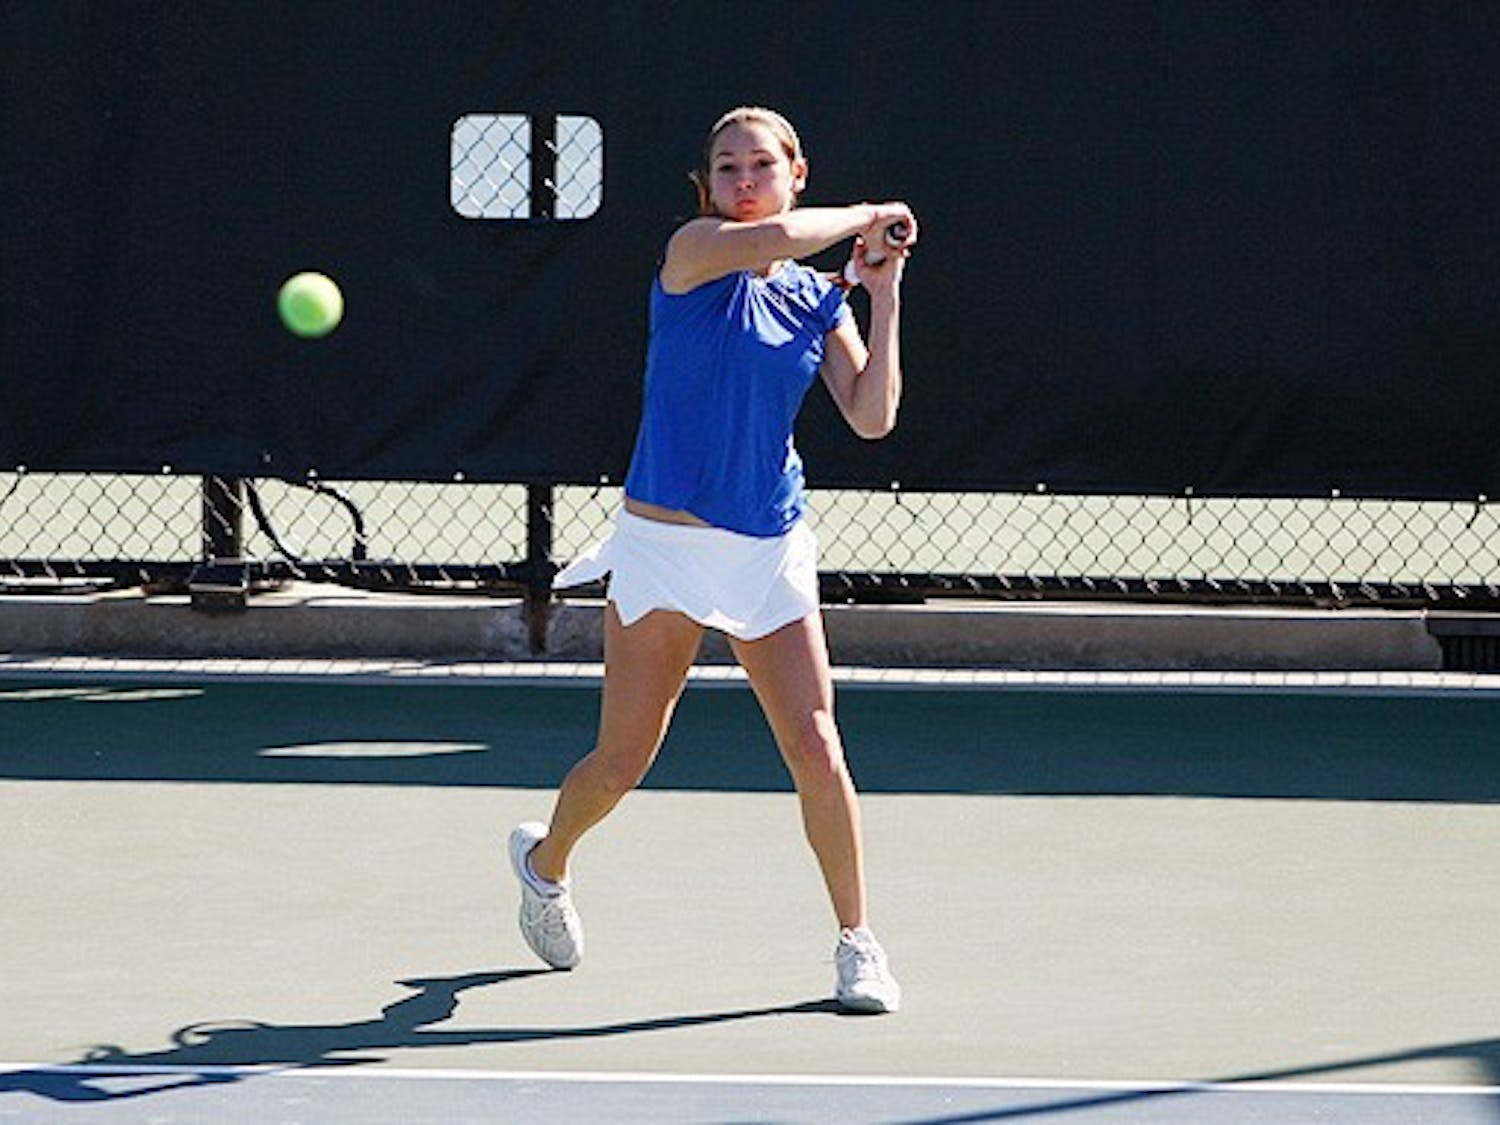 Freshman Mary Clayton's easy win set the tone for Duke in singles play as the Blue Devils swept aside Notre Dame.